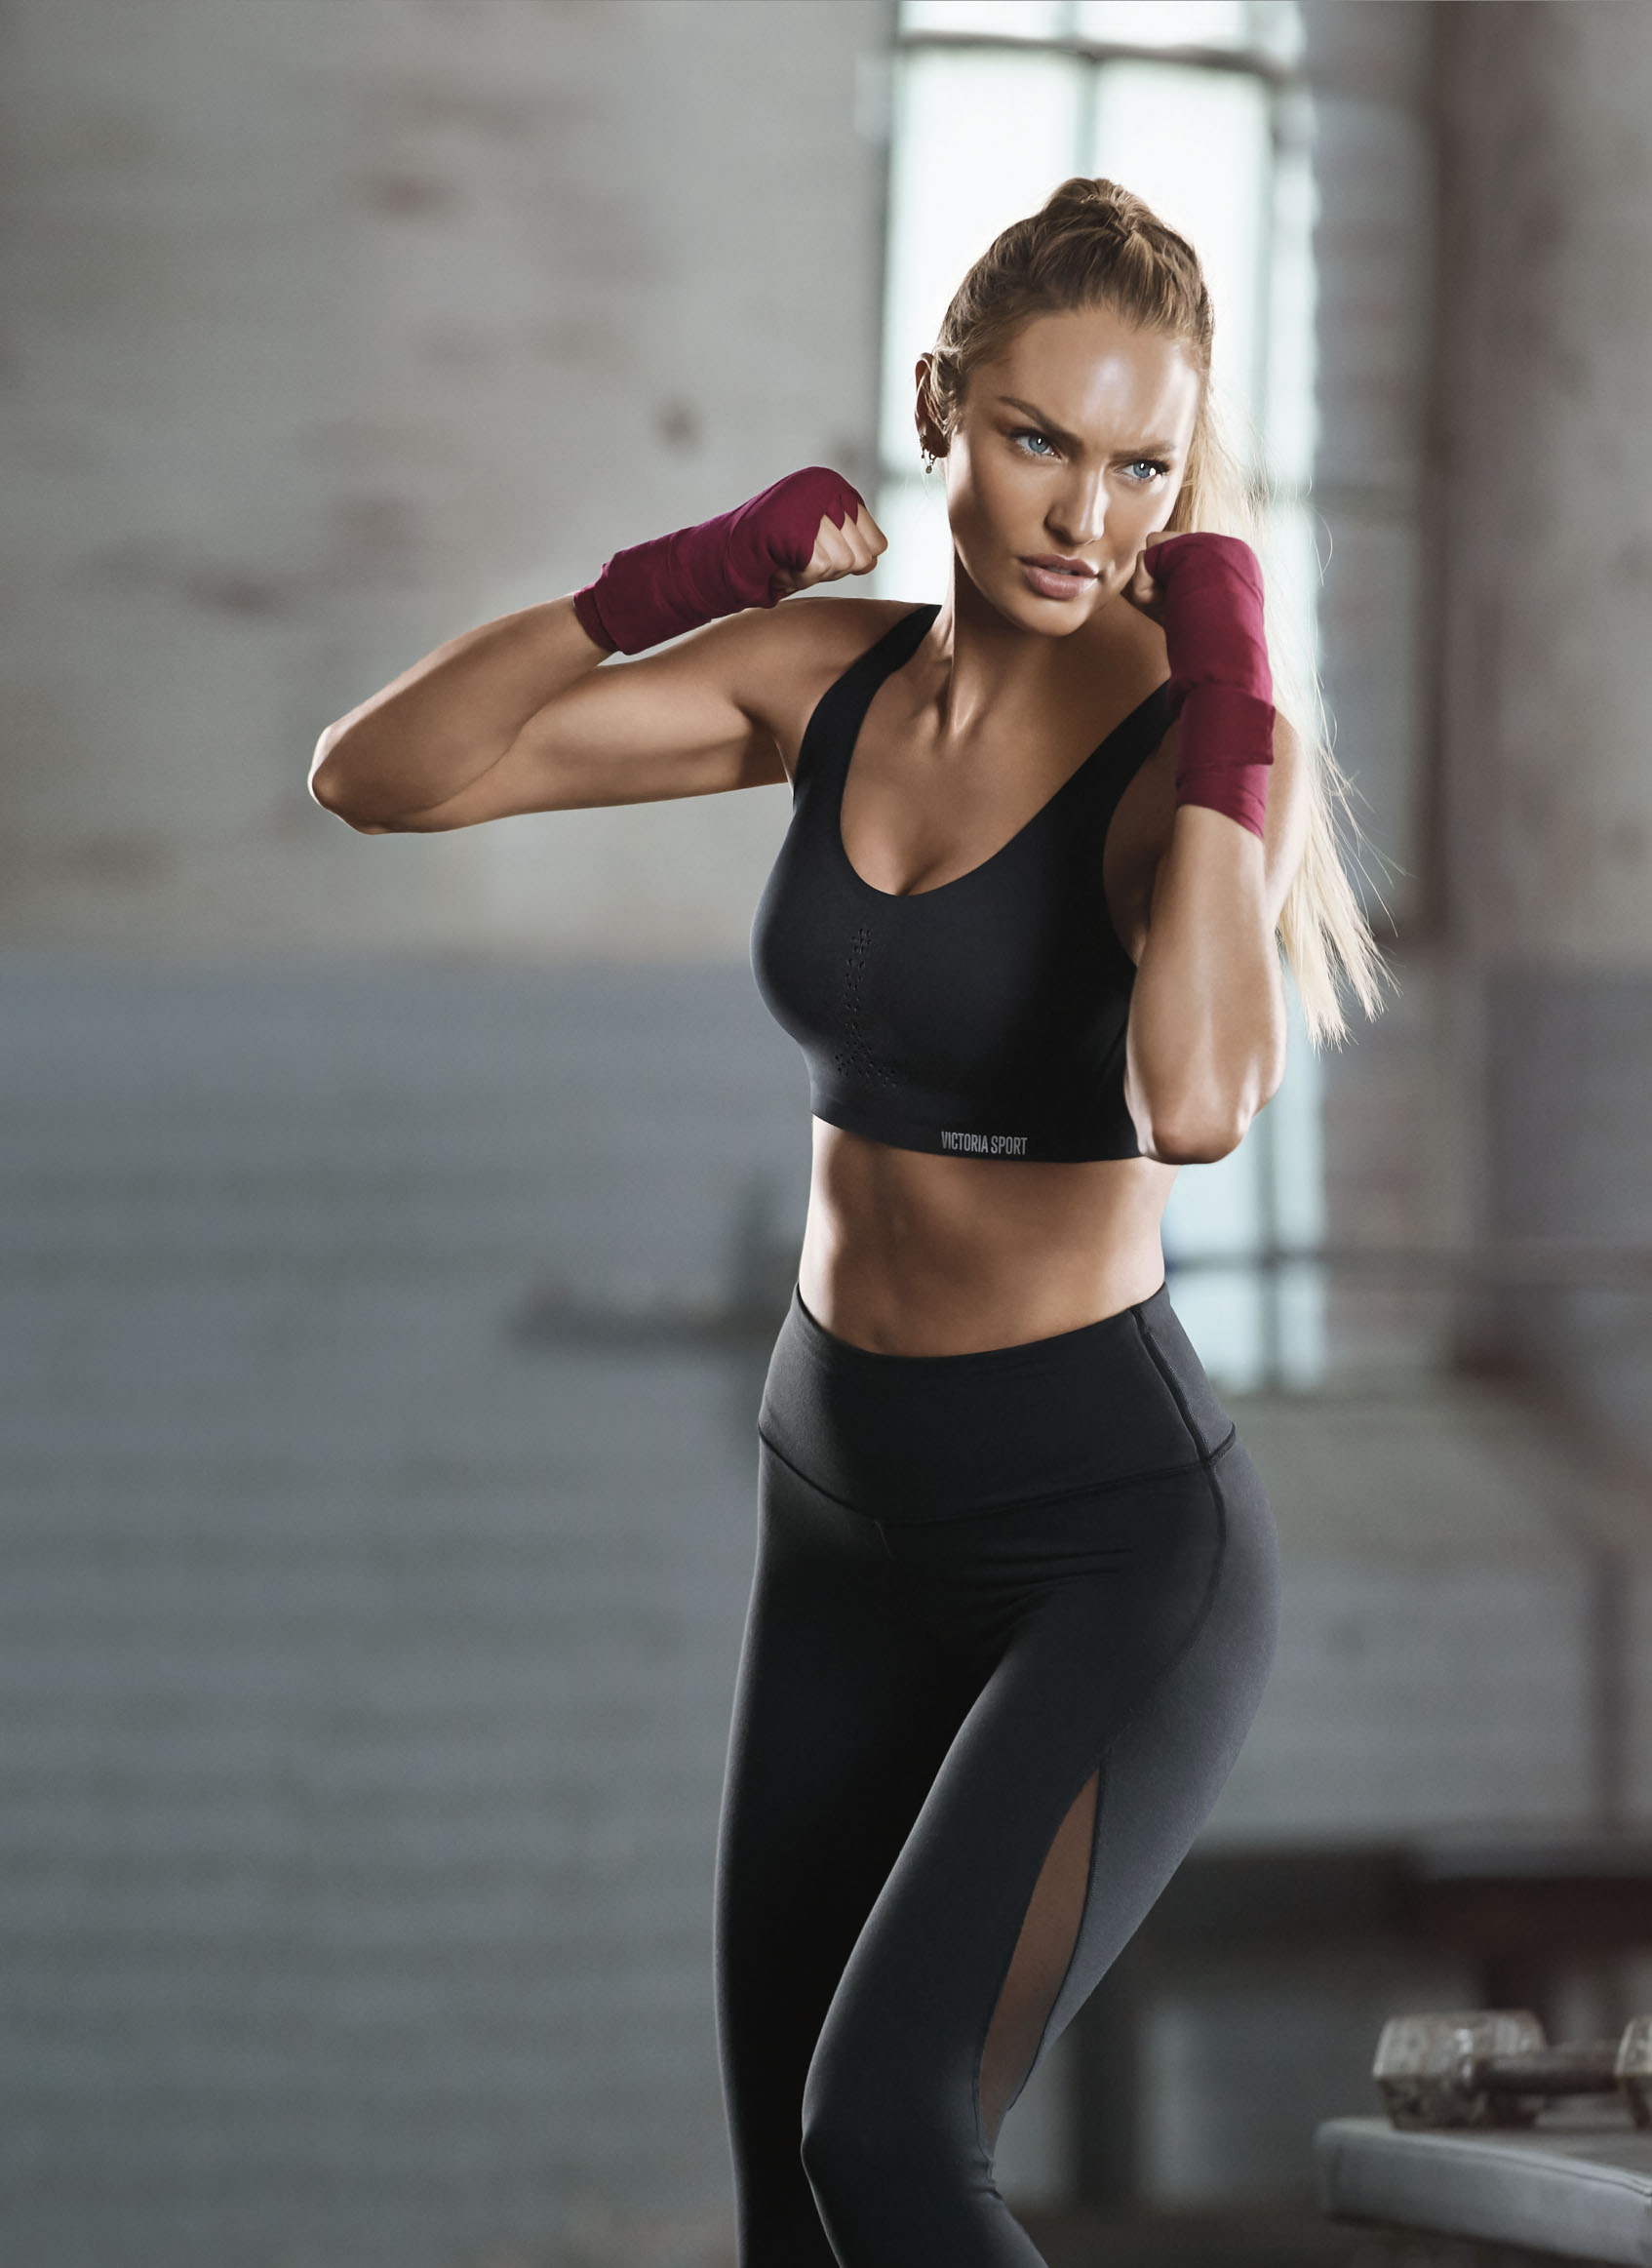 Victoria's Secret Models Aerobic Exercise Routines | Cardiovascular Fitness & Gym Workouts For Victoria's Secret Models & Victoria's Secret Angels | How To Exercise Like Victoria's Secret Supermodels